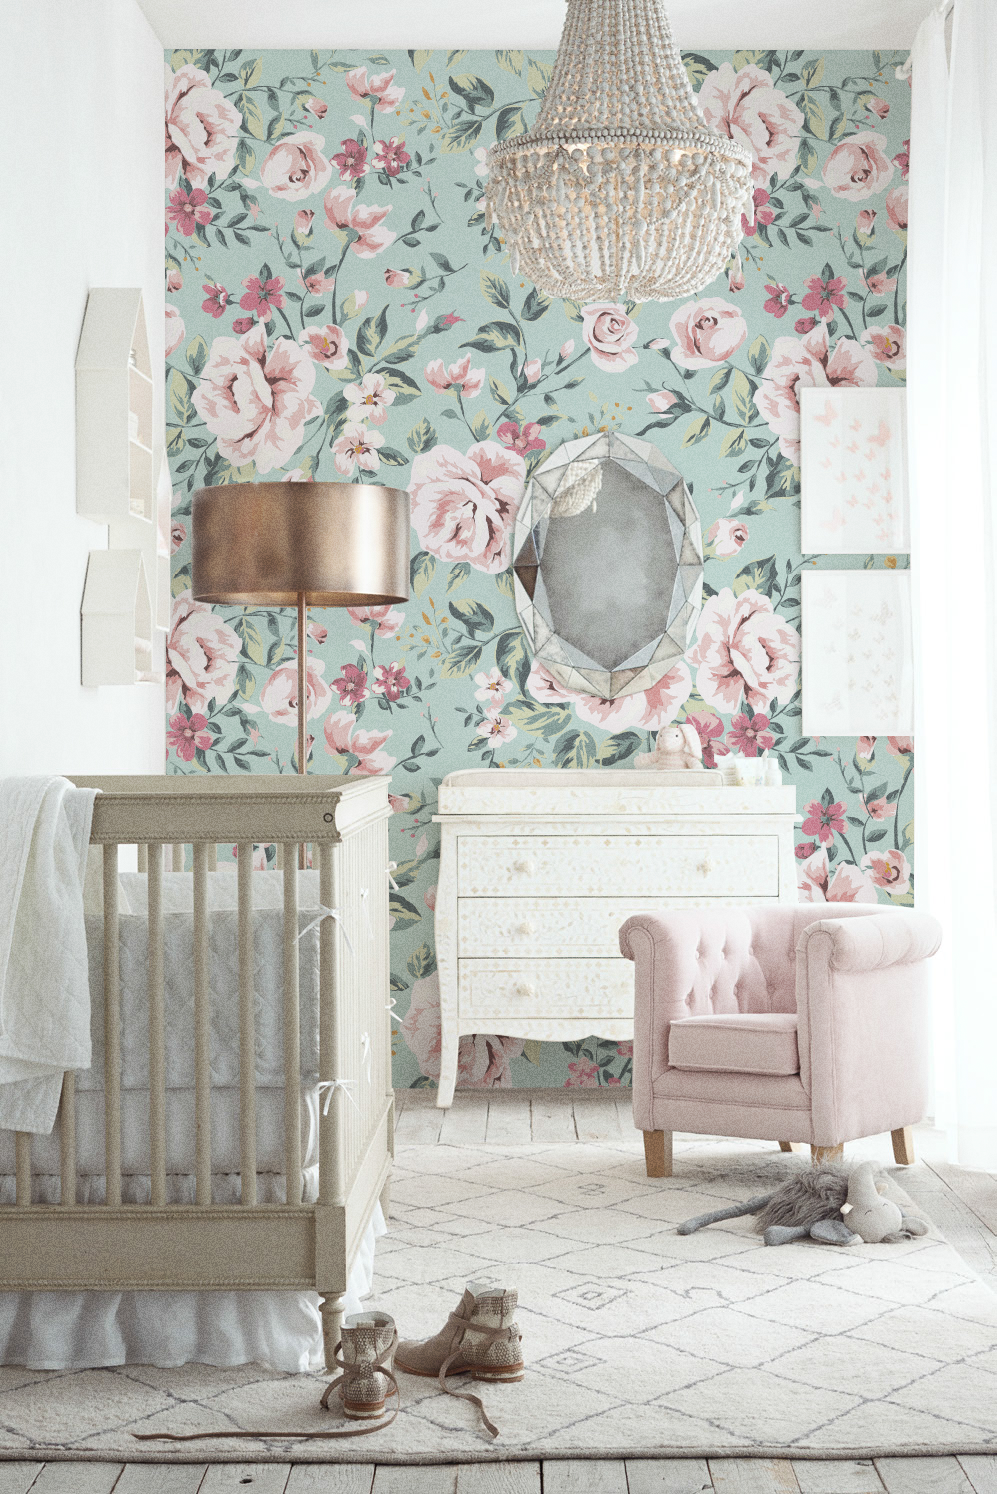 Free Download Nursery Floral Removable Wallpaper Vintage And 50